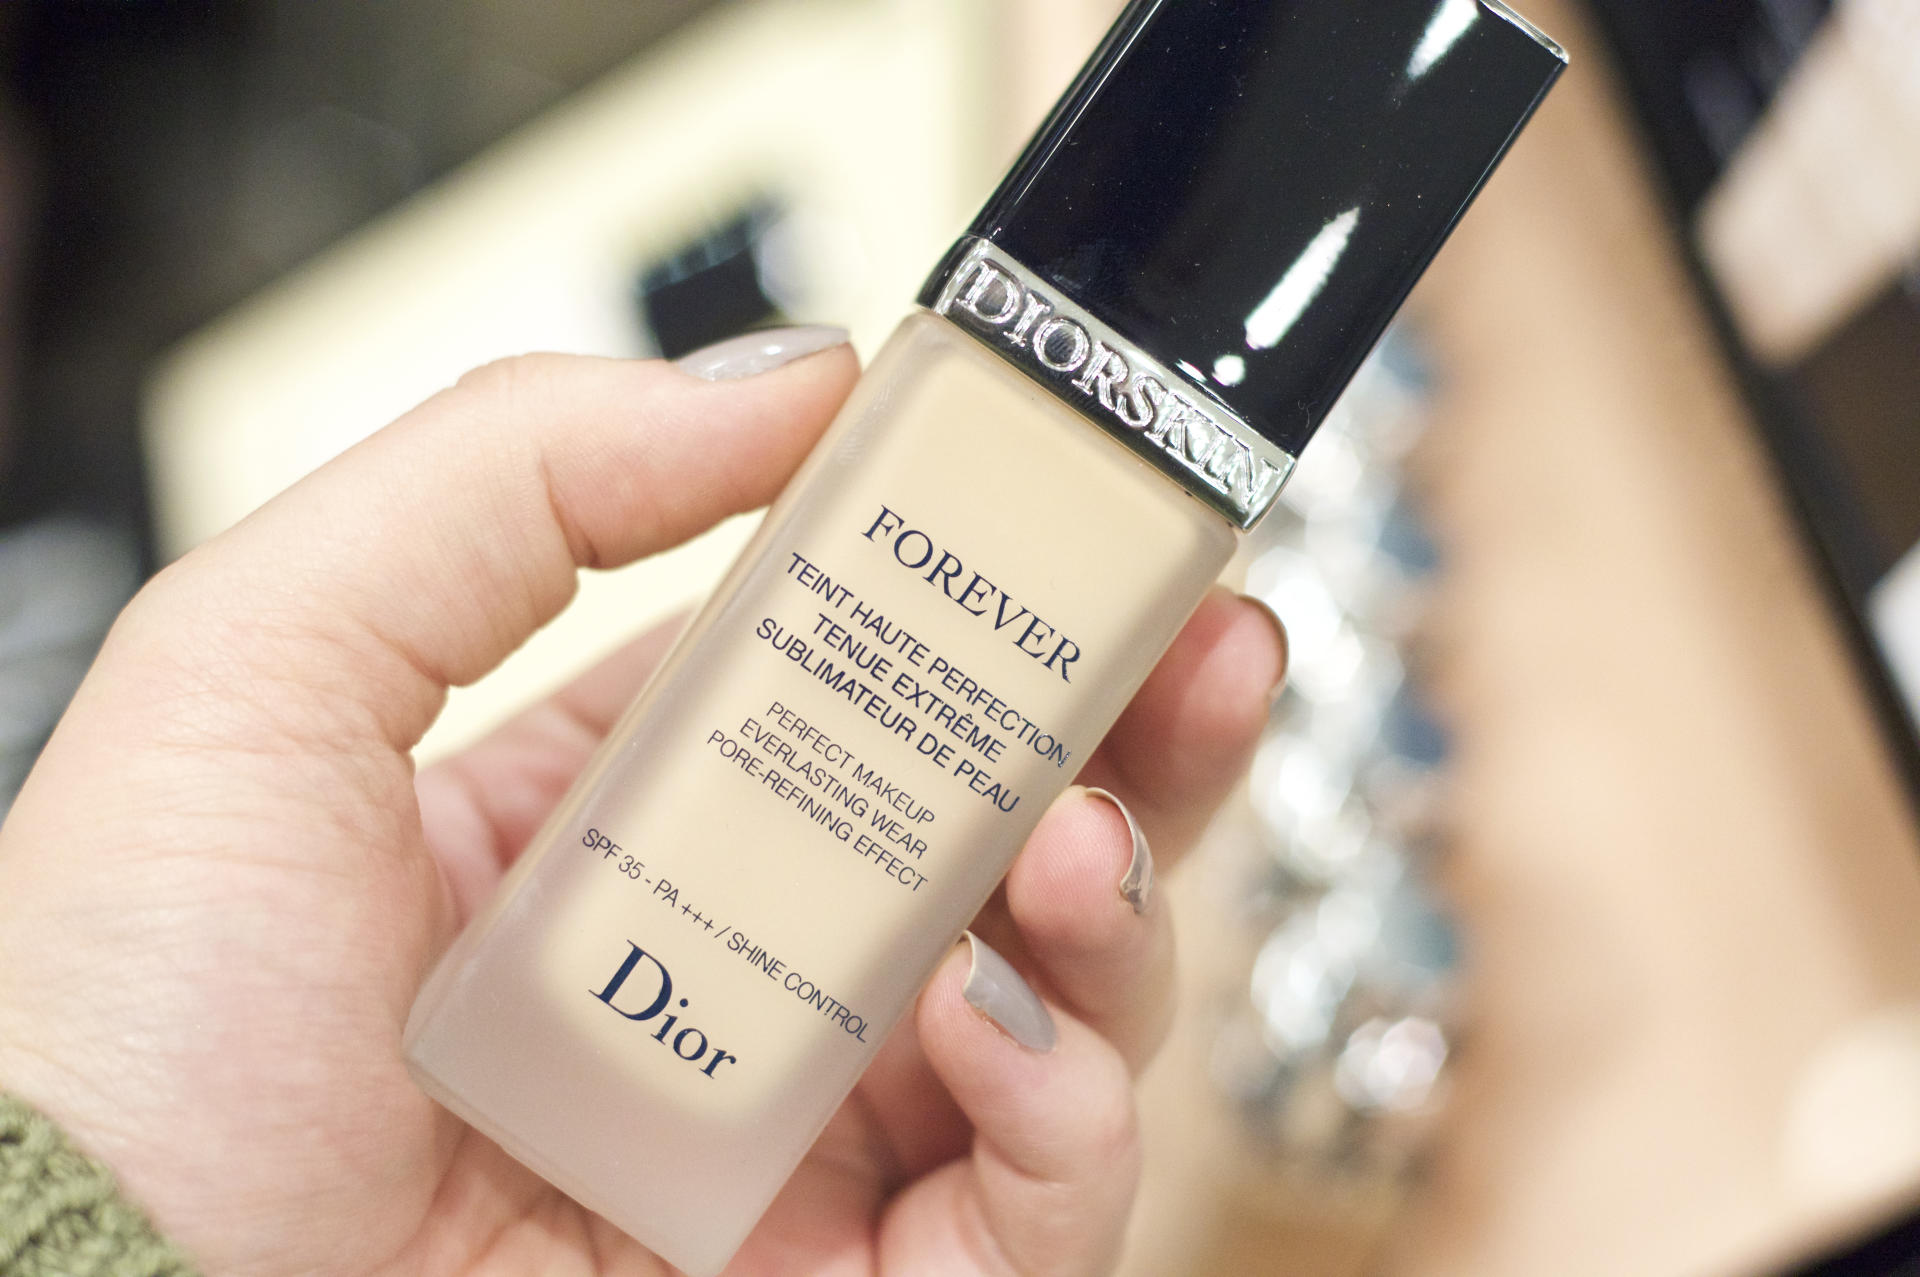 Made From Beauty Dior Forever Foundation